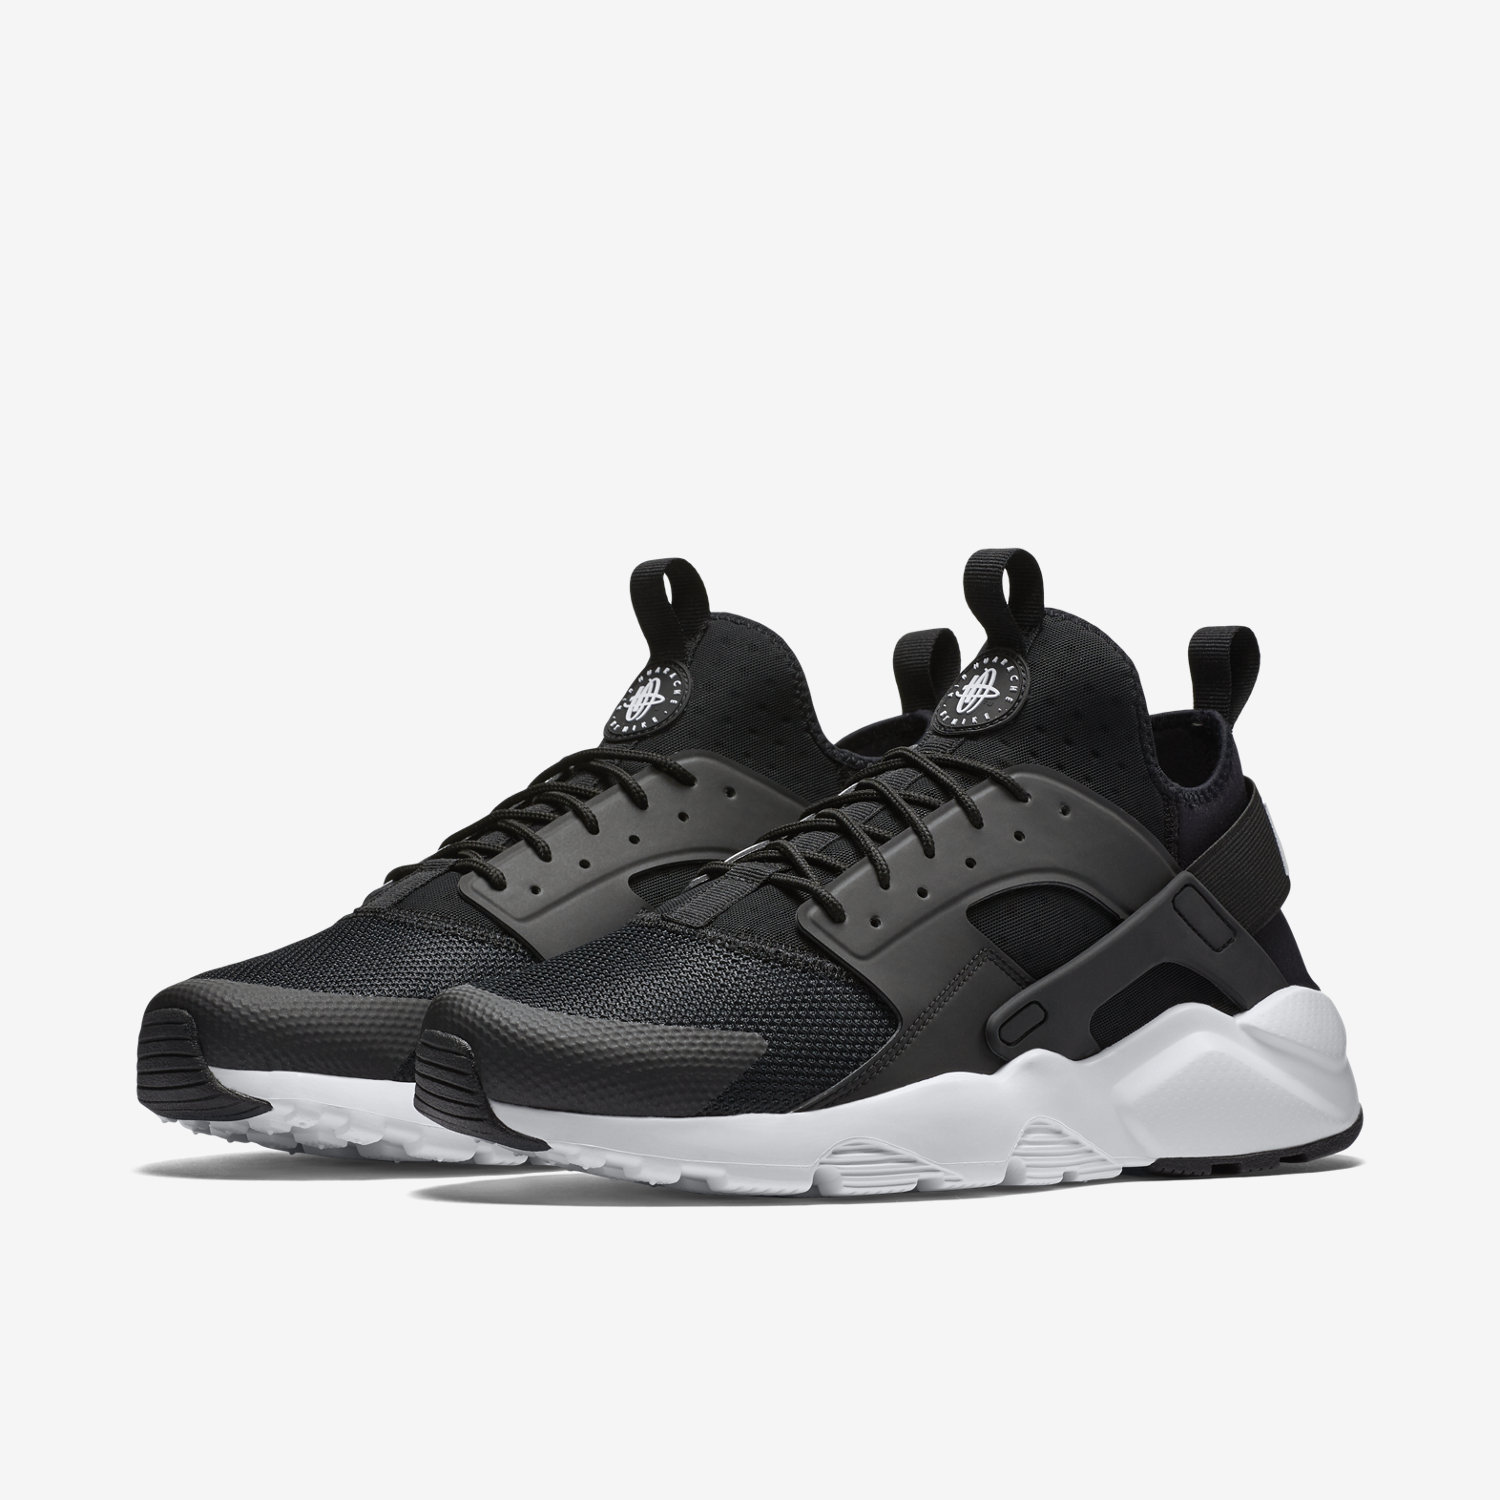 http://images.nike.com/is/image/DotCom/PDP_HERO_ZOOM/NIKE-AIR-HUARACHE-RUN-ULTRA-819685_001_E_PREM.jpg